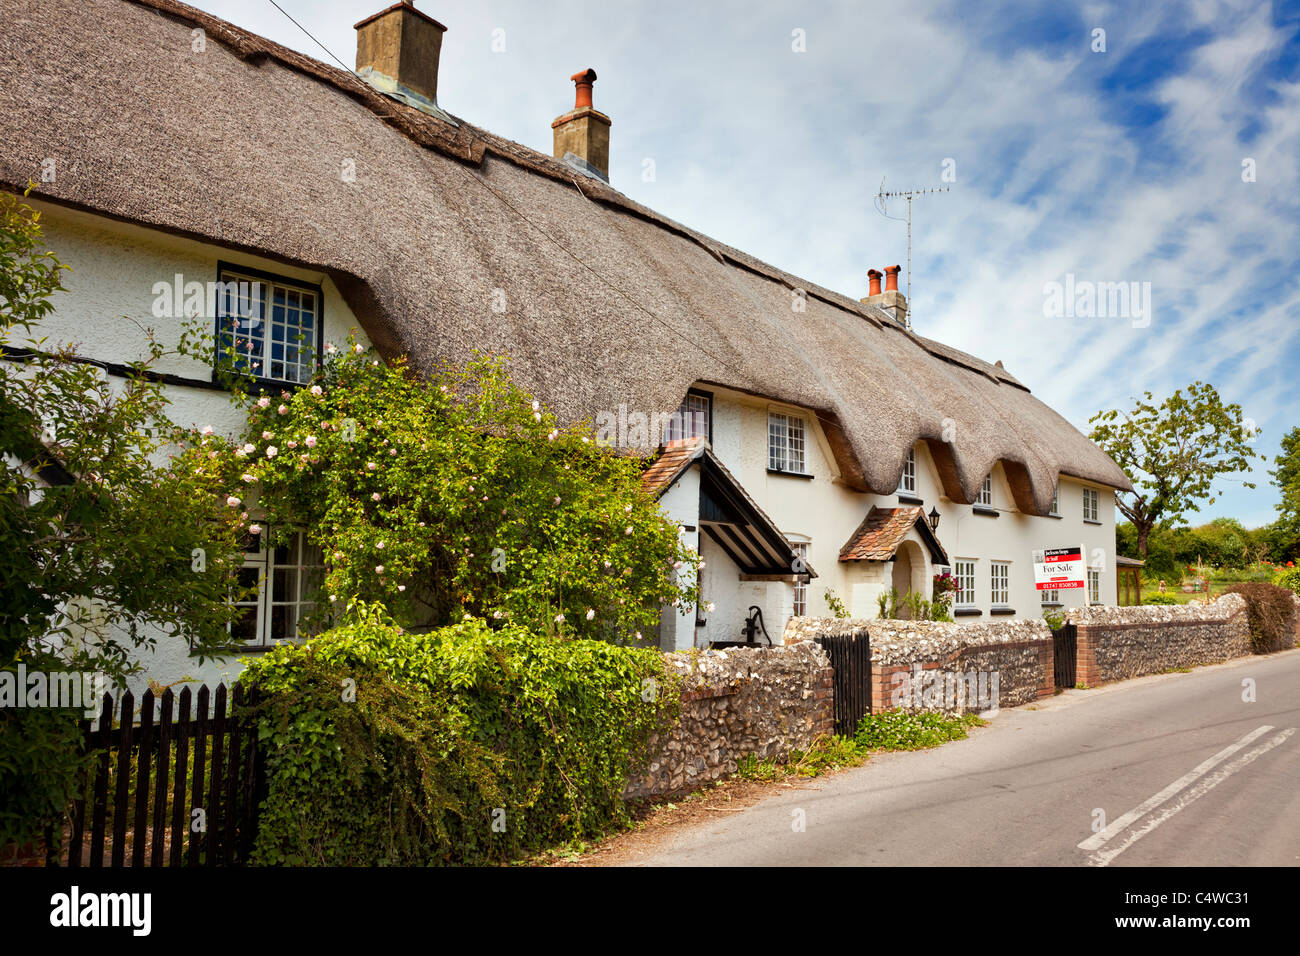 english semi detached thatched cottage for sale england uk stock rh alamy com english cottages for sale in usa english heritage cottages for sale